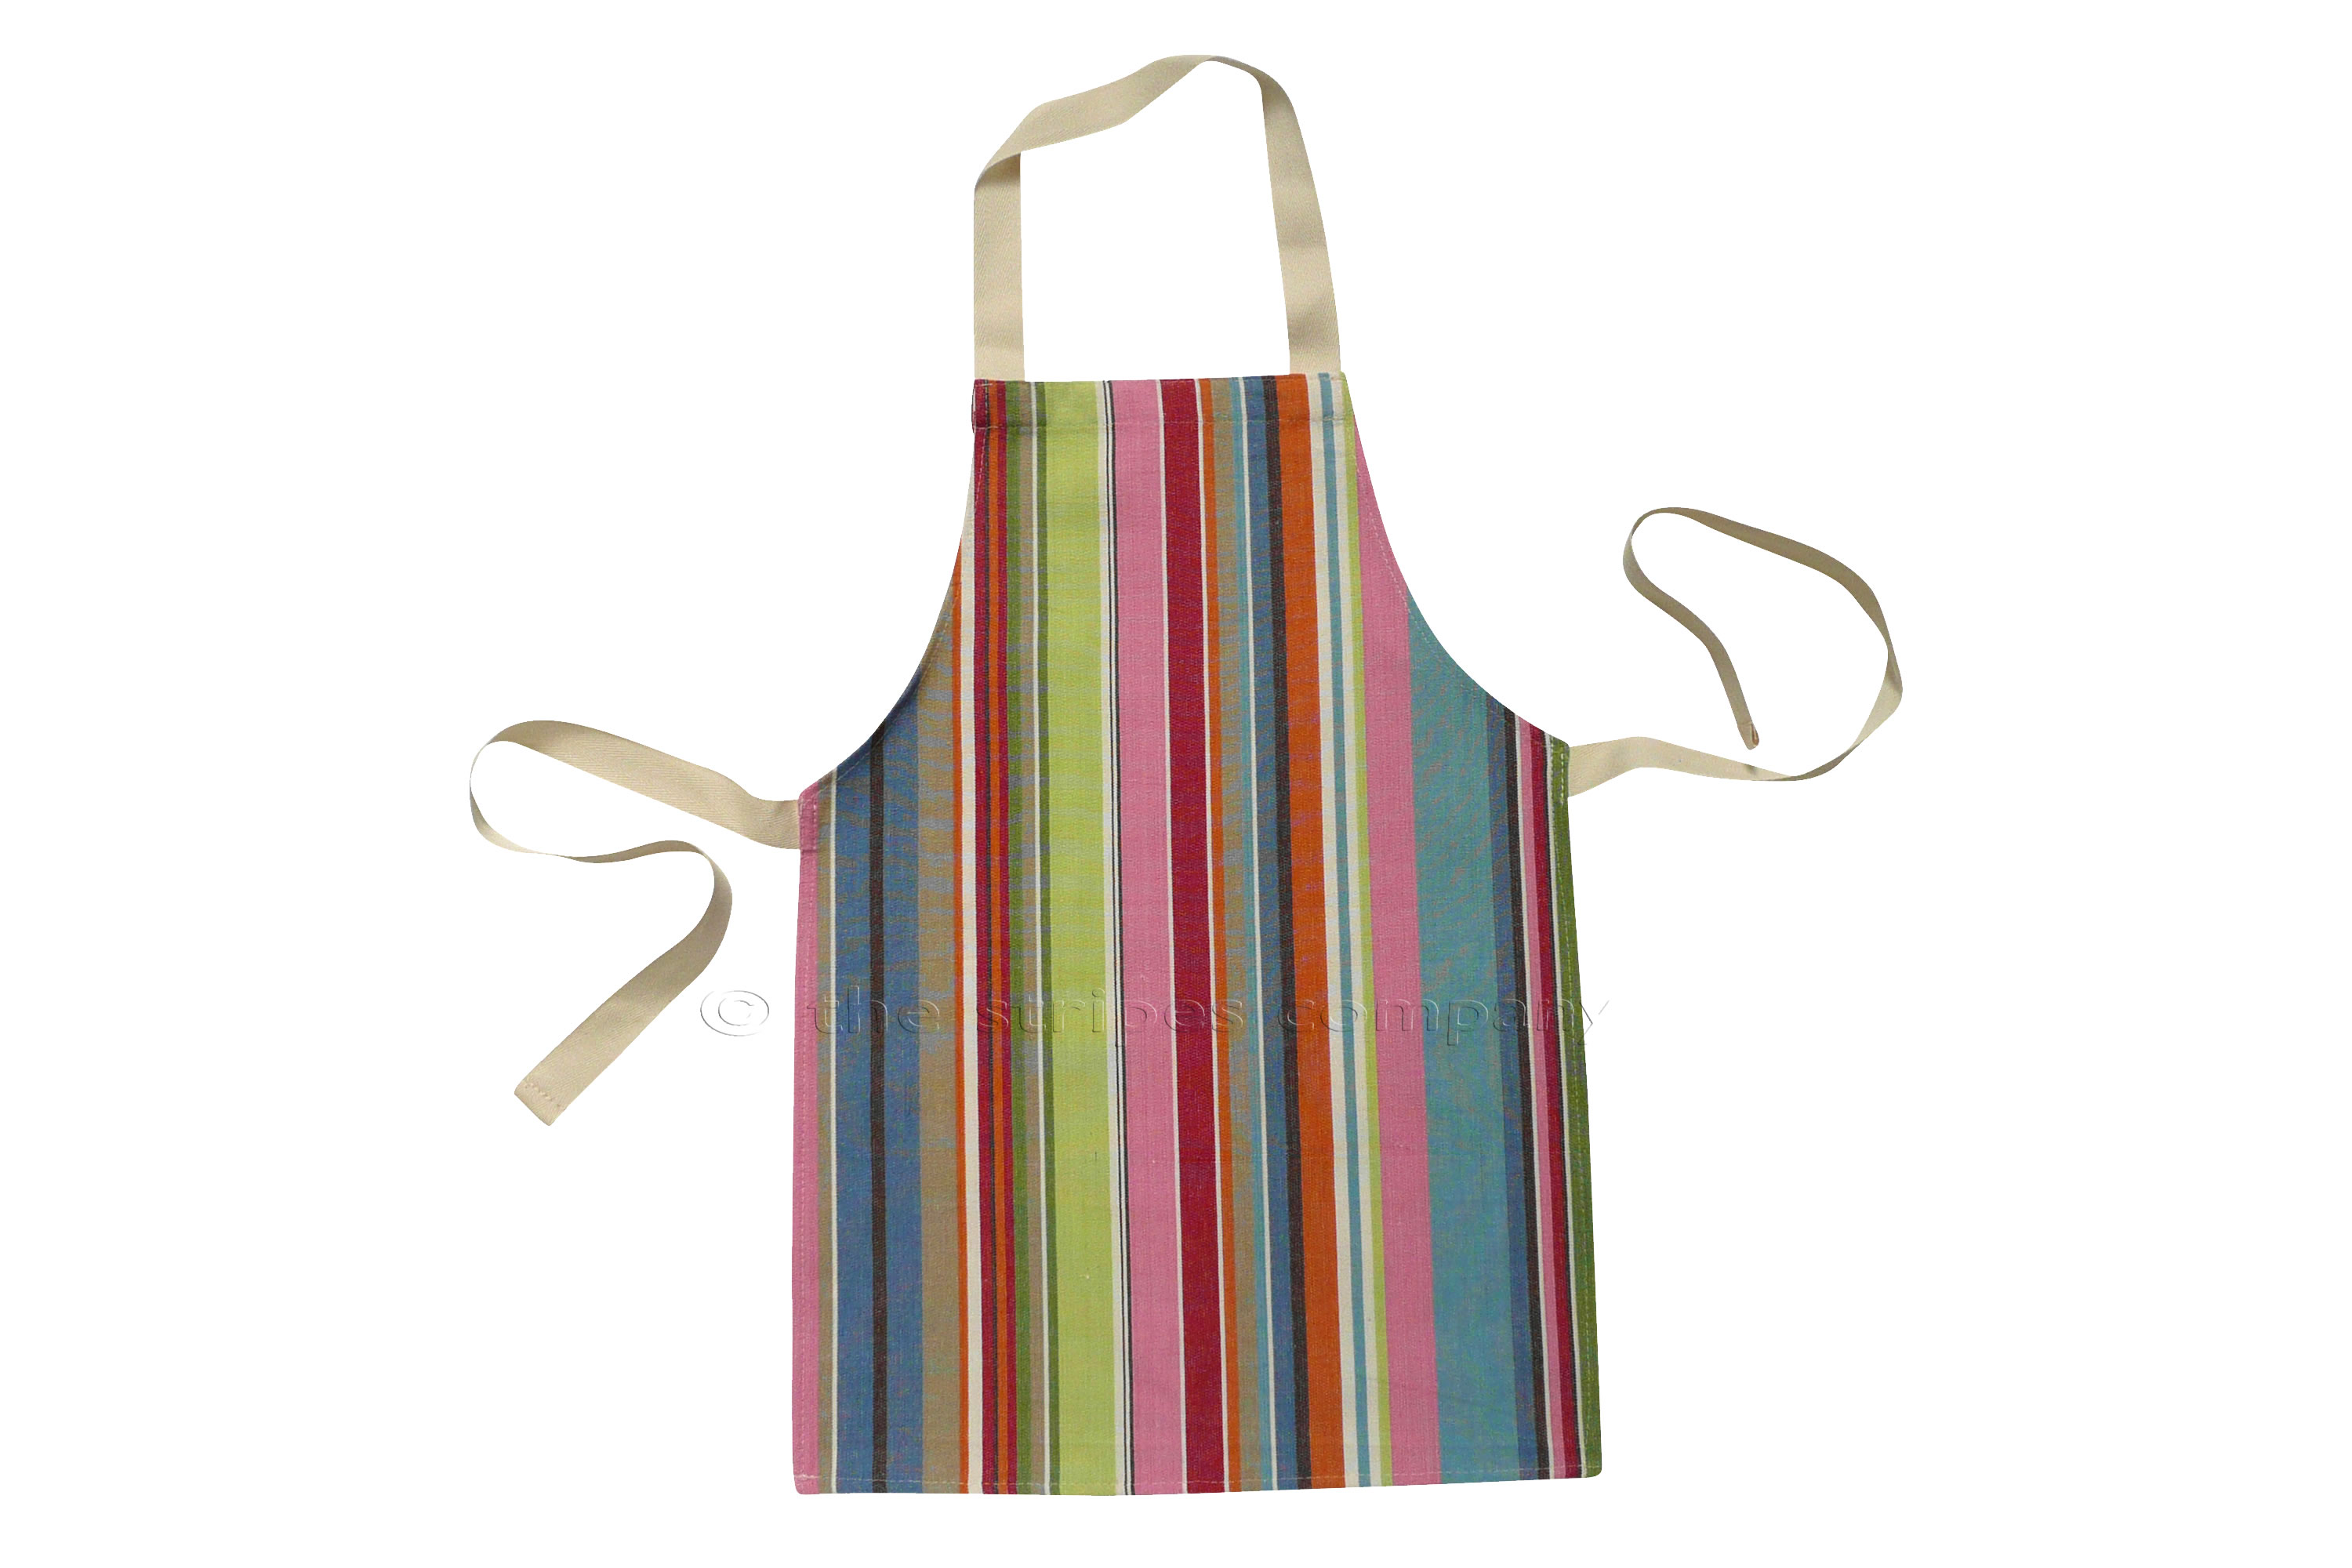 Blue Toddlers Aprons - Striped Aprons For Small Children Blue  Pink  Turquoise  Stripes